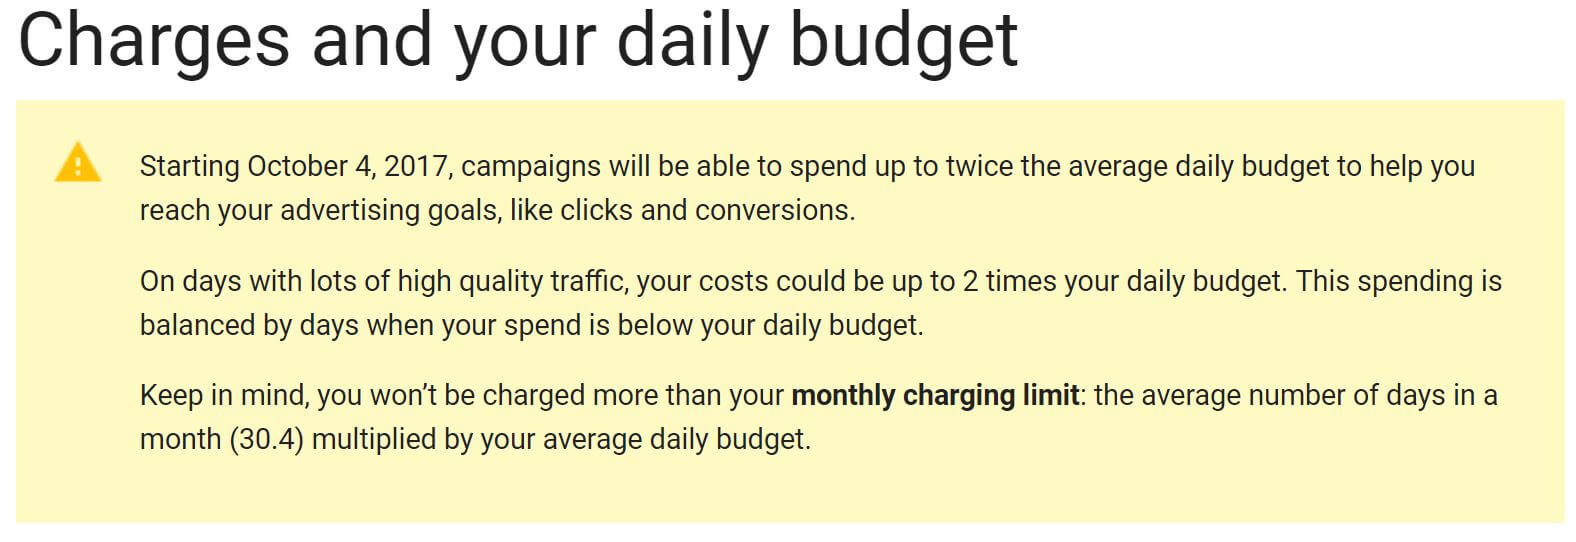 AdWords Can Now Spend Twice Your Daily Budget – What You Can Do